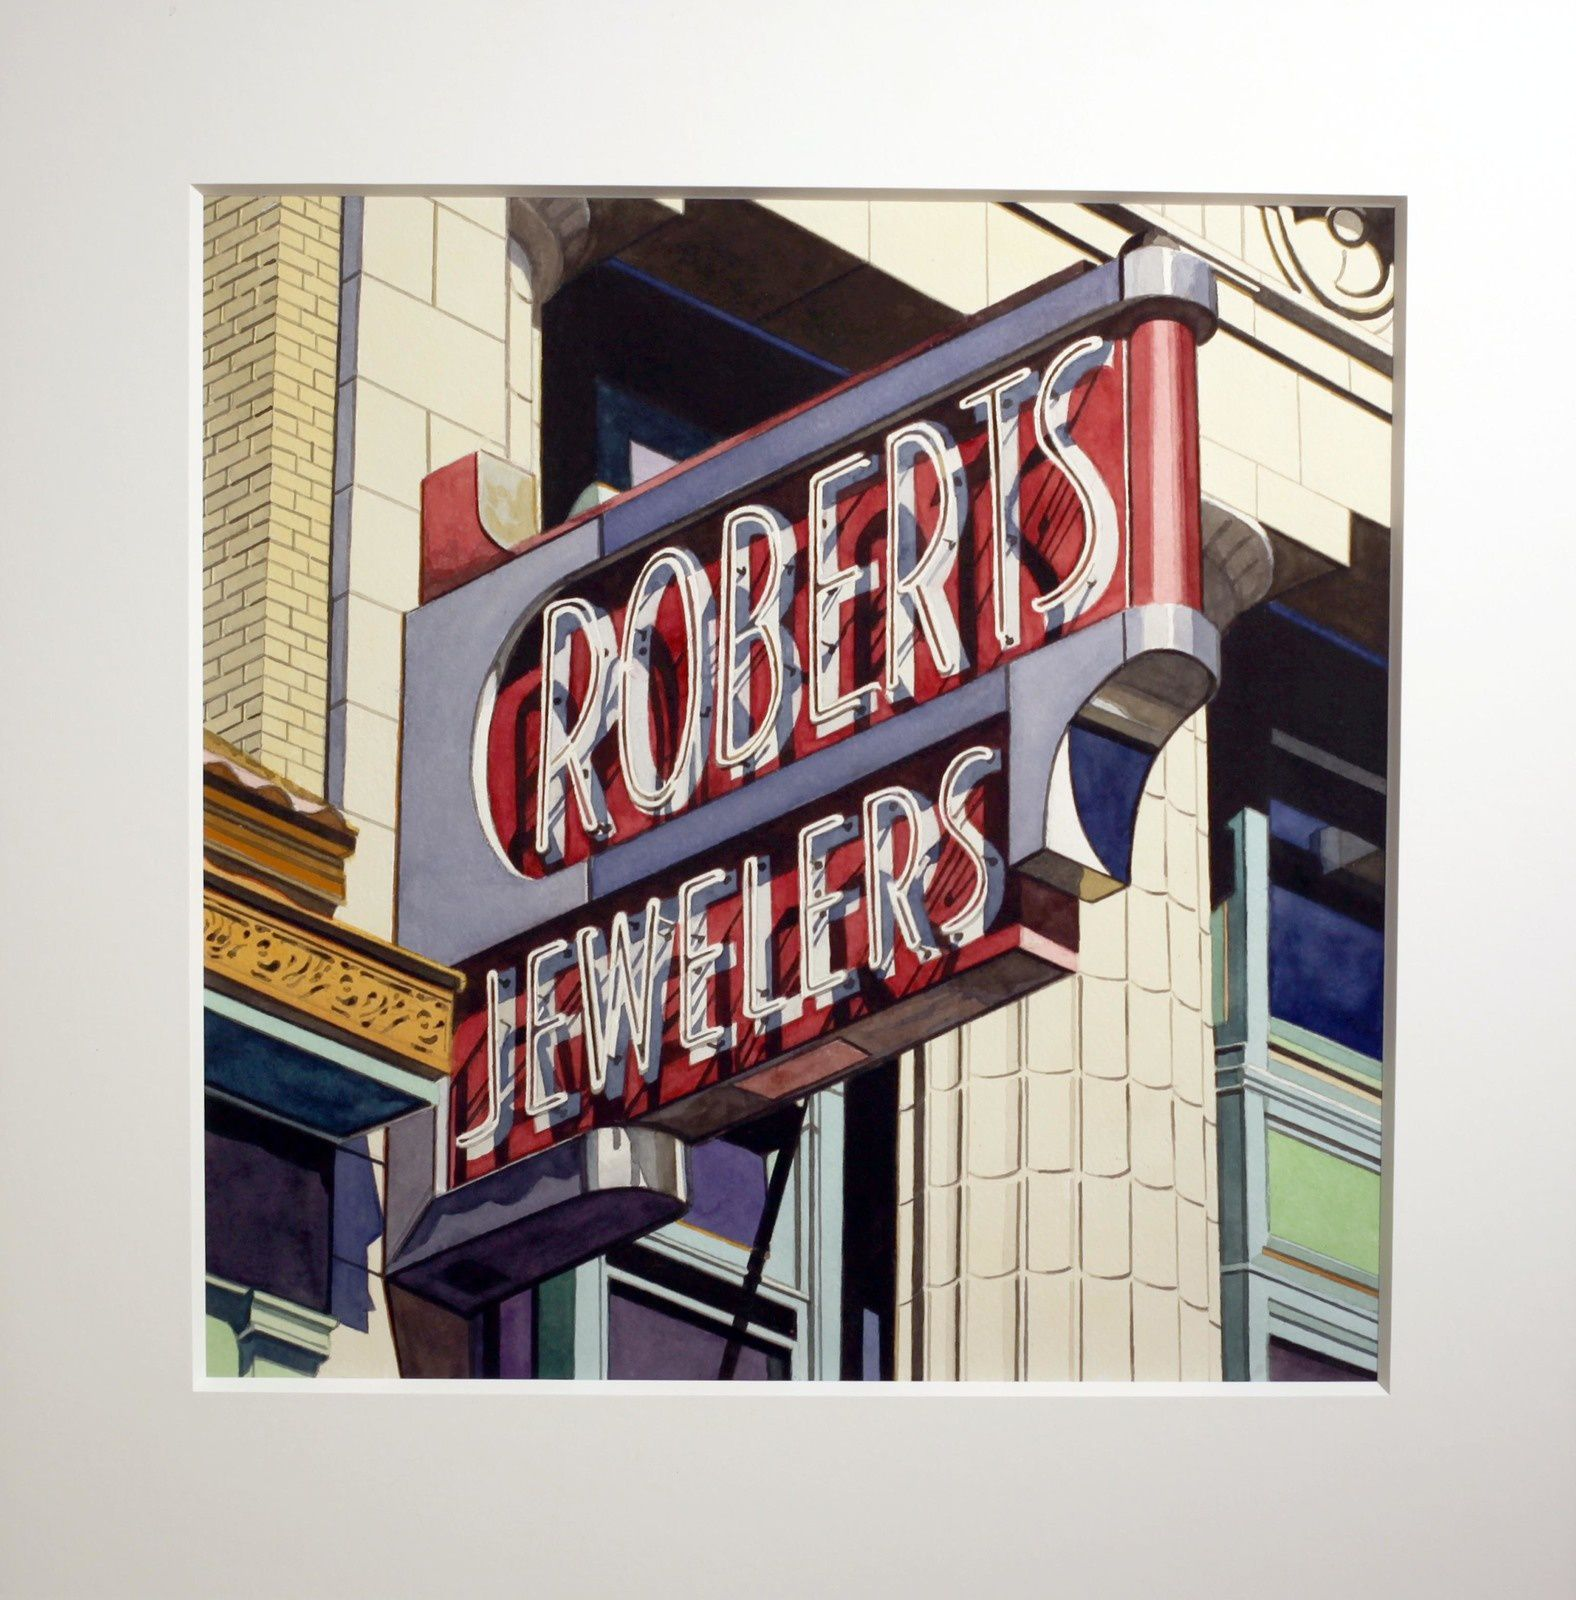 """Roberts Jewelers"", 2013 de Robert COTTINGHAM - Courtesy Galerie Georges-Philippe & Nathalie Vallois © Photo Éric Simon"